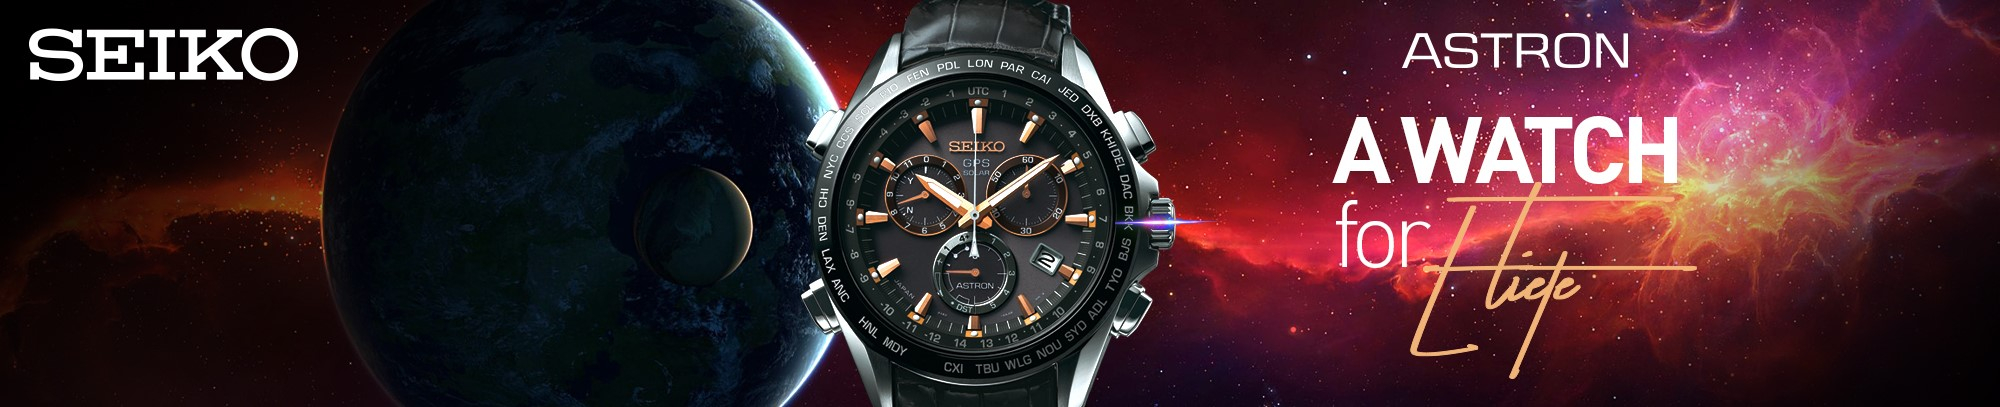 Seiko Hand Watches